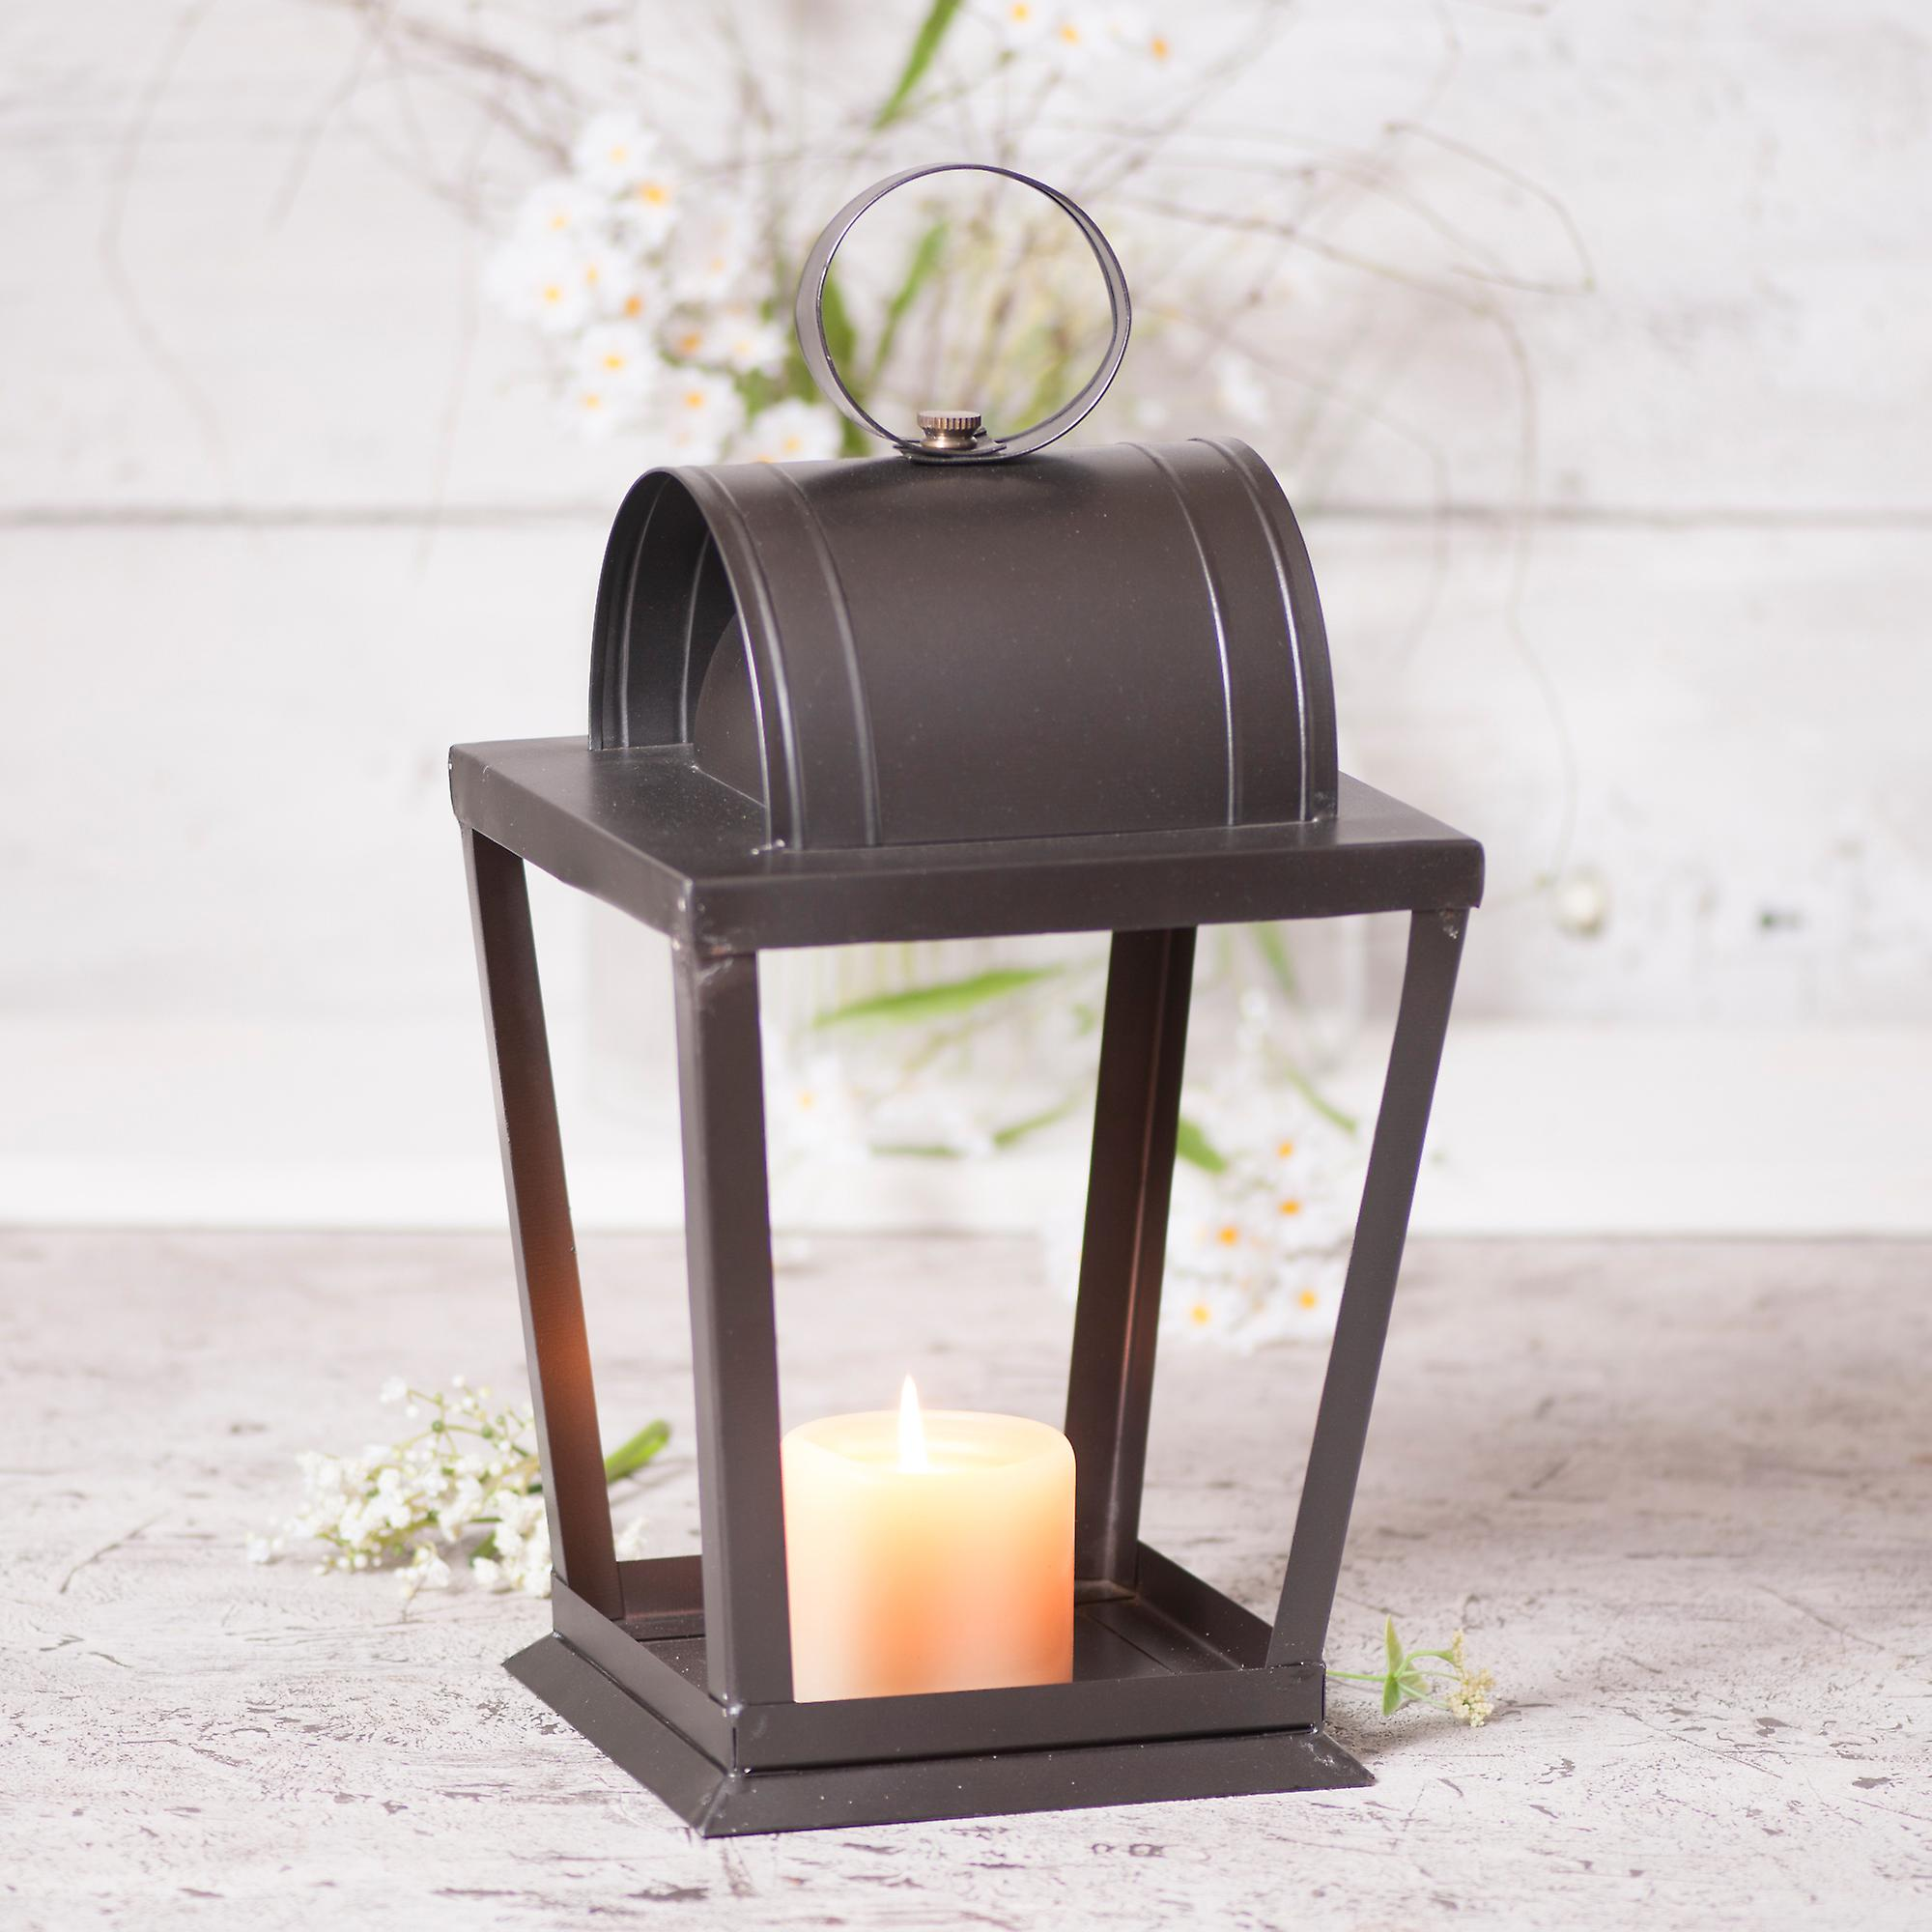 Irvin& 039;s Country Tinware Angled Sitting Lantern